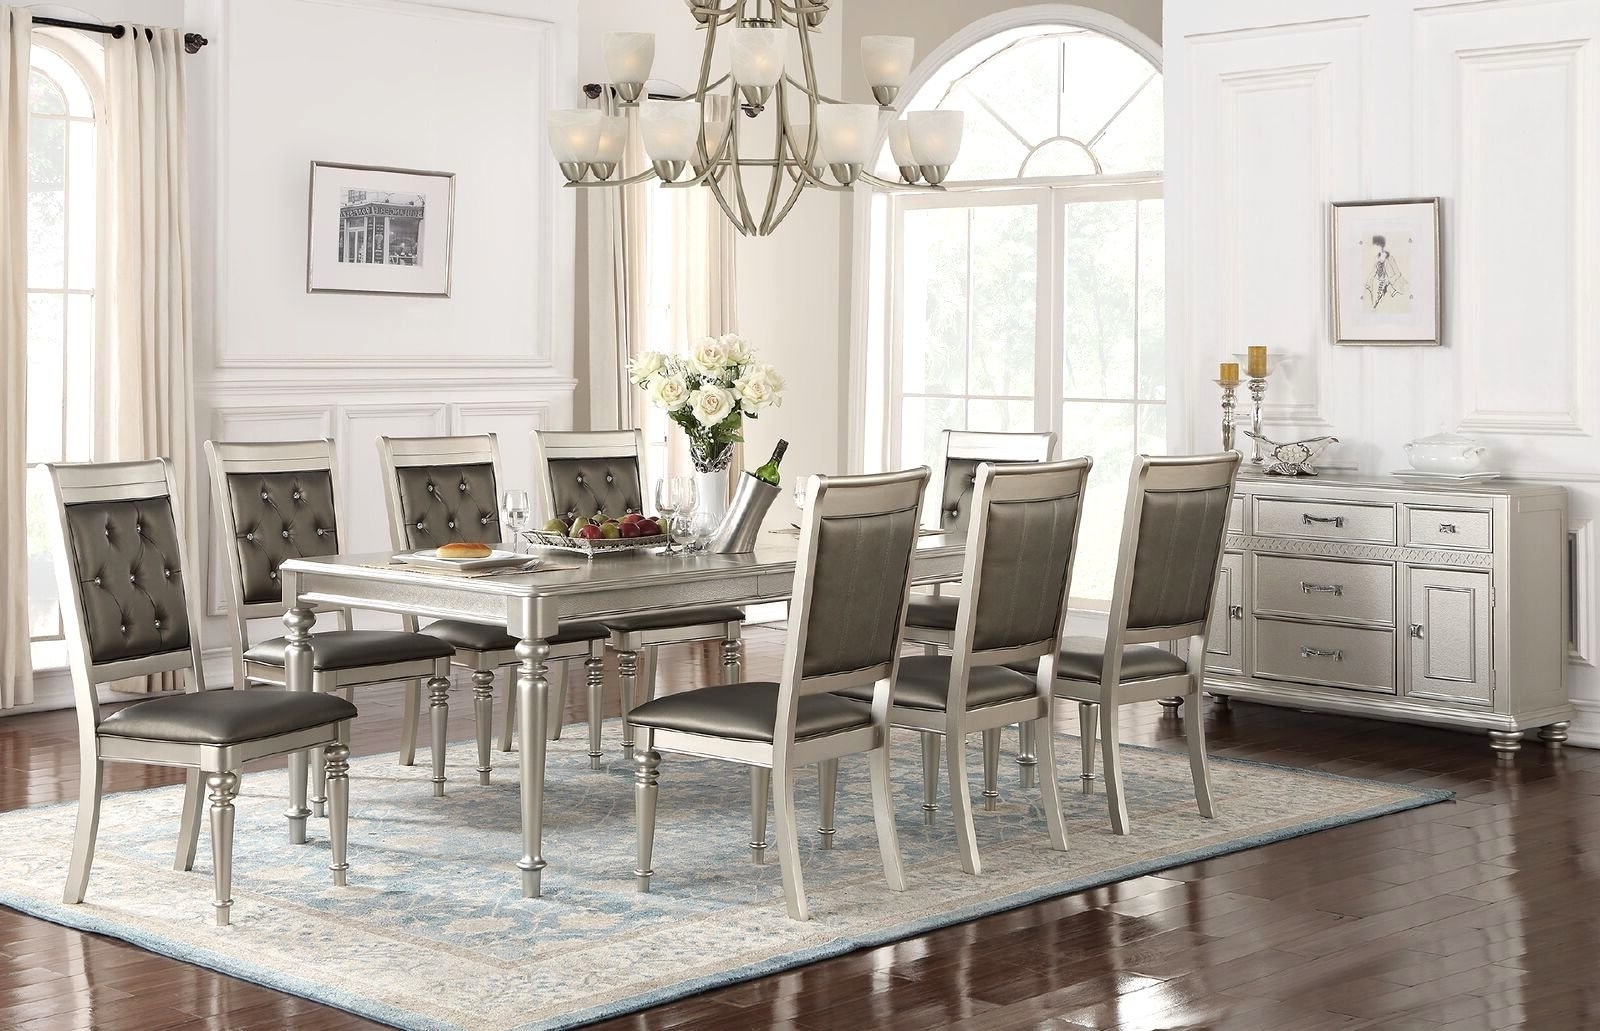 Caira Black 7 Piece Dining Sets With Arm Chairs & Diamond Back Chairs For 2018 9 Piece Dining Sets You'll Love (View 14 of 16)